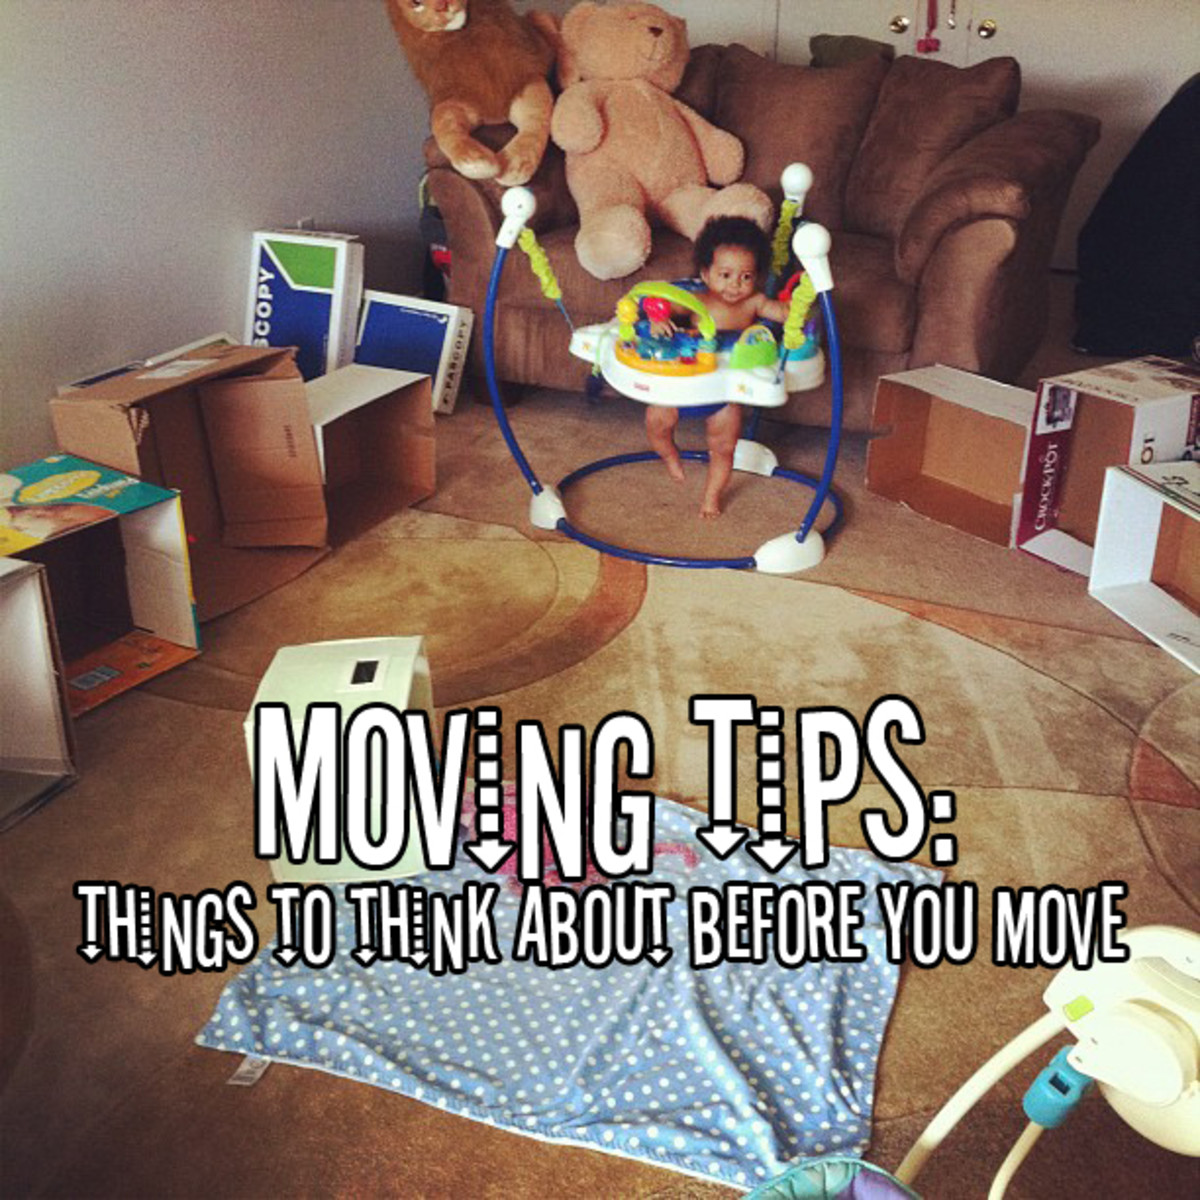 Moving Tips: Things to Think About Before You Move